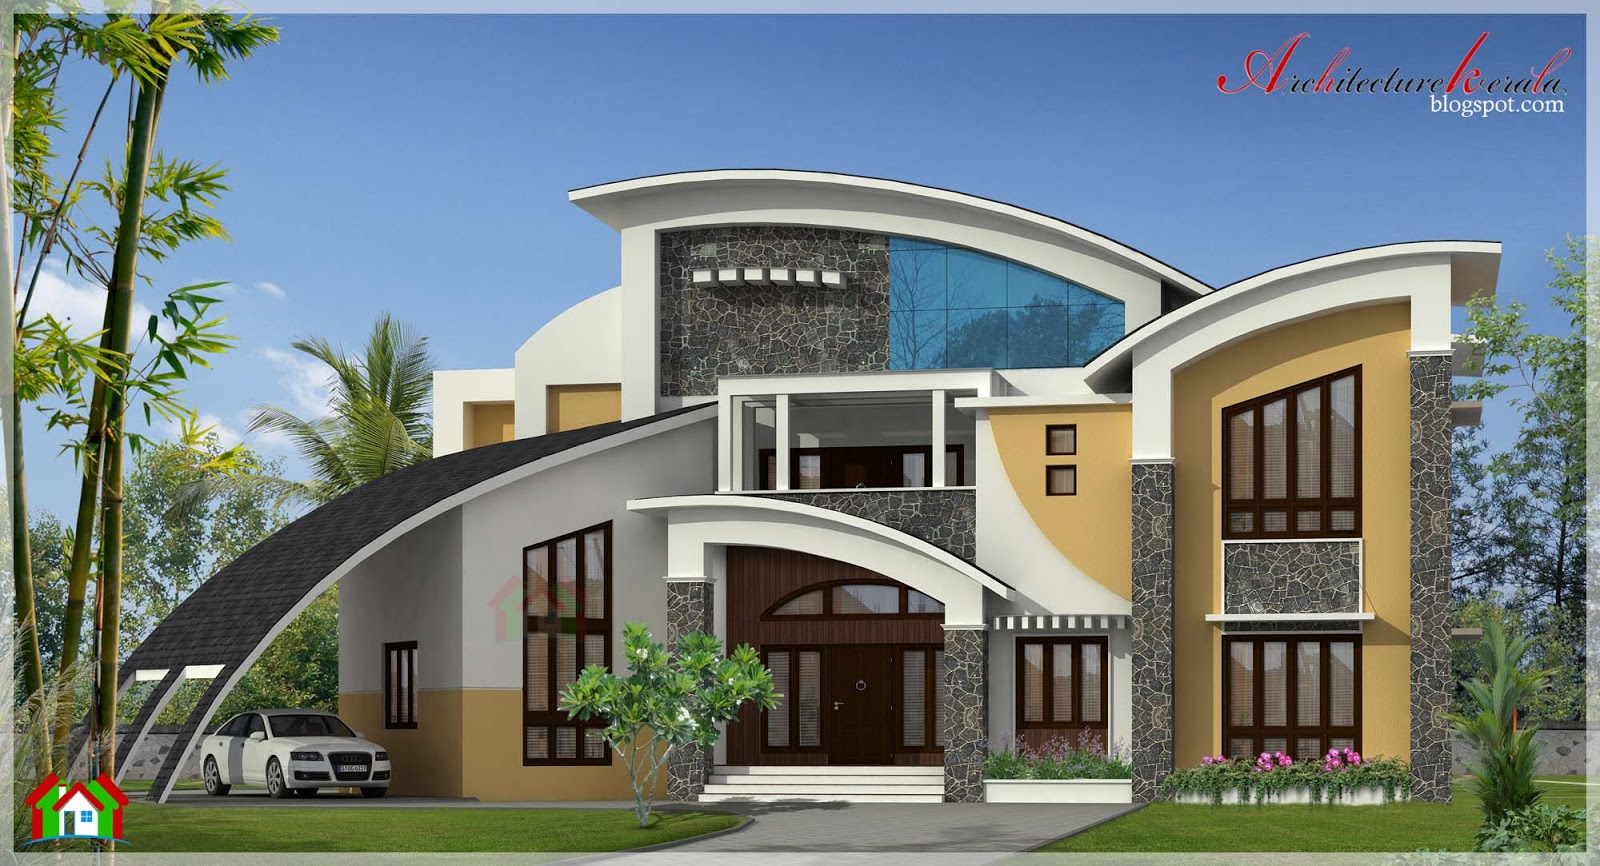 Architecture kerala 5800 square feet contemporary style for Contemporary style homes in kerala